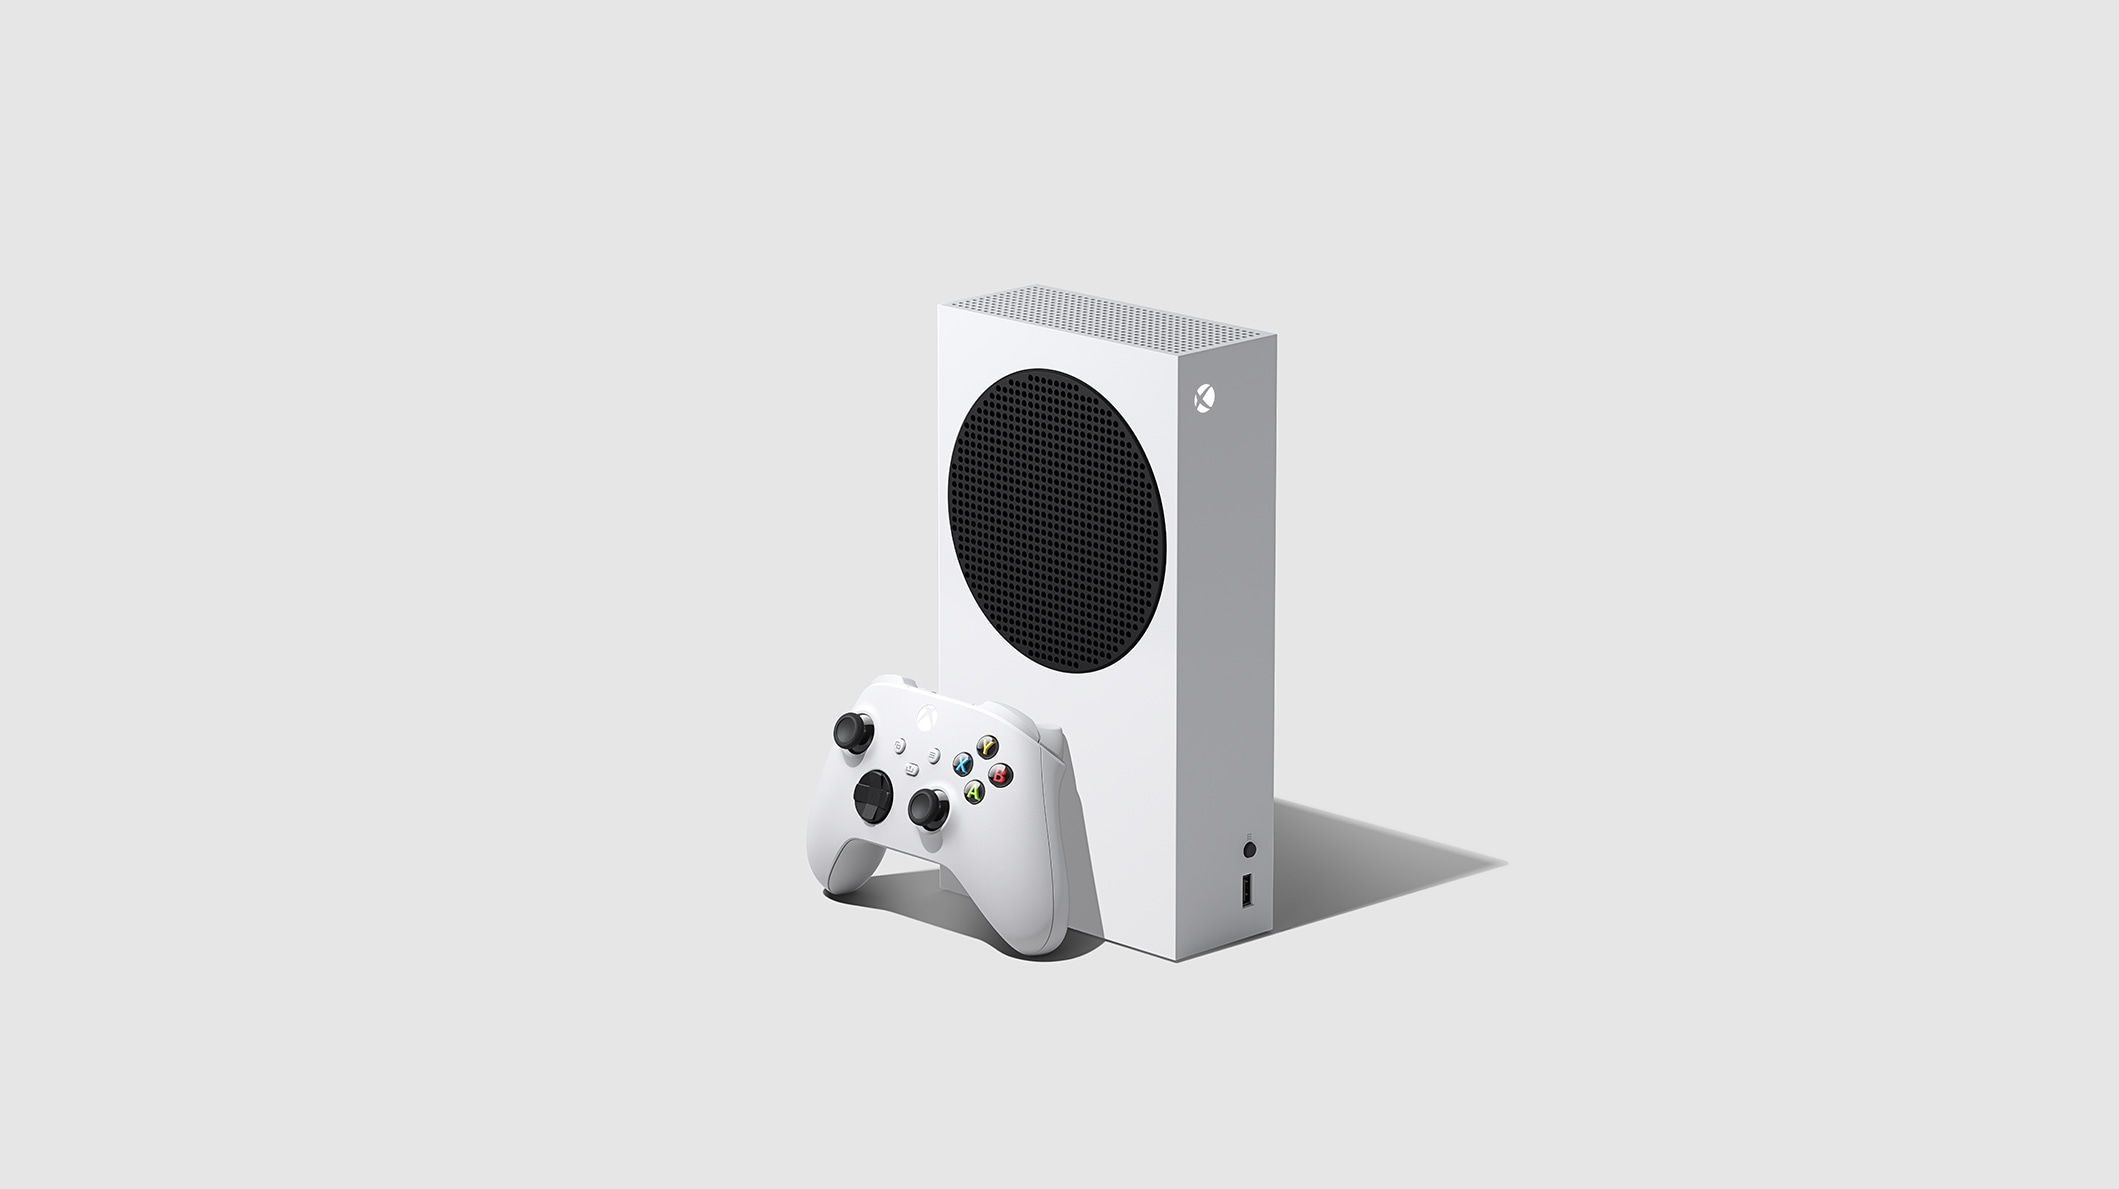 Xbox Series S console with Xbox wireless controller robot white